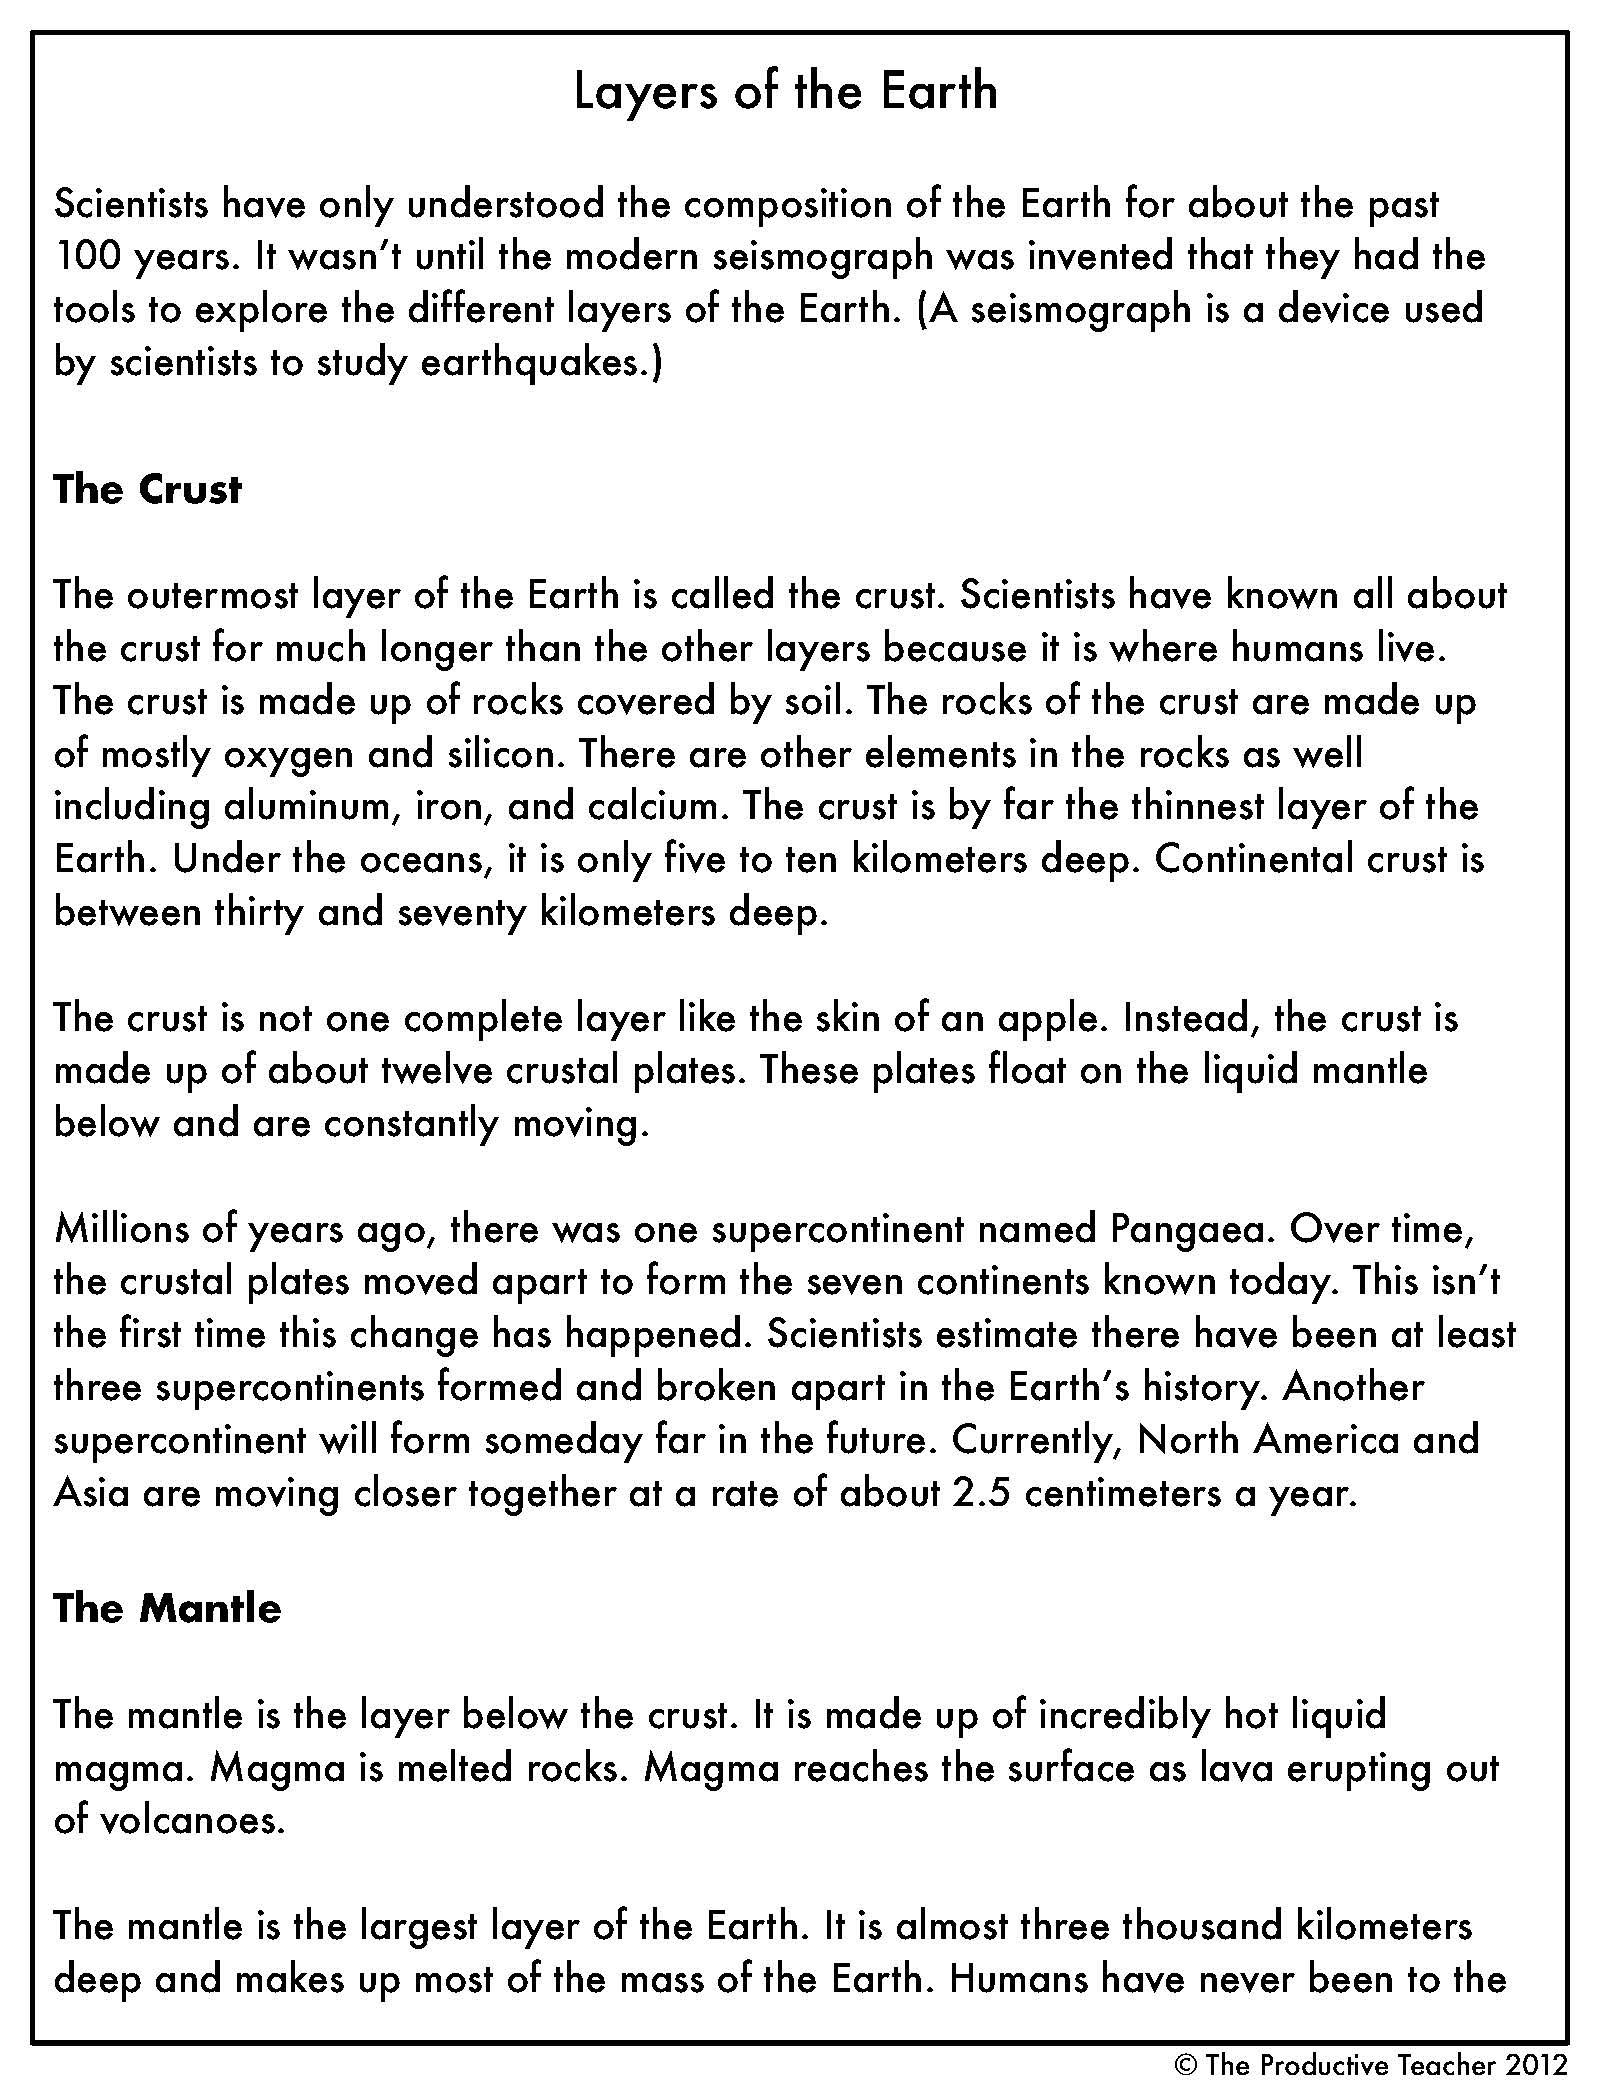 Layers Of The Earth Reading Passage Science Reading Passages Reading Passages Science Reading [ 2100 x 1600 Pixel ]